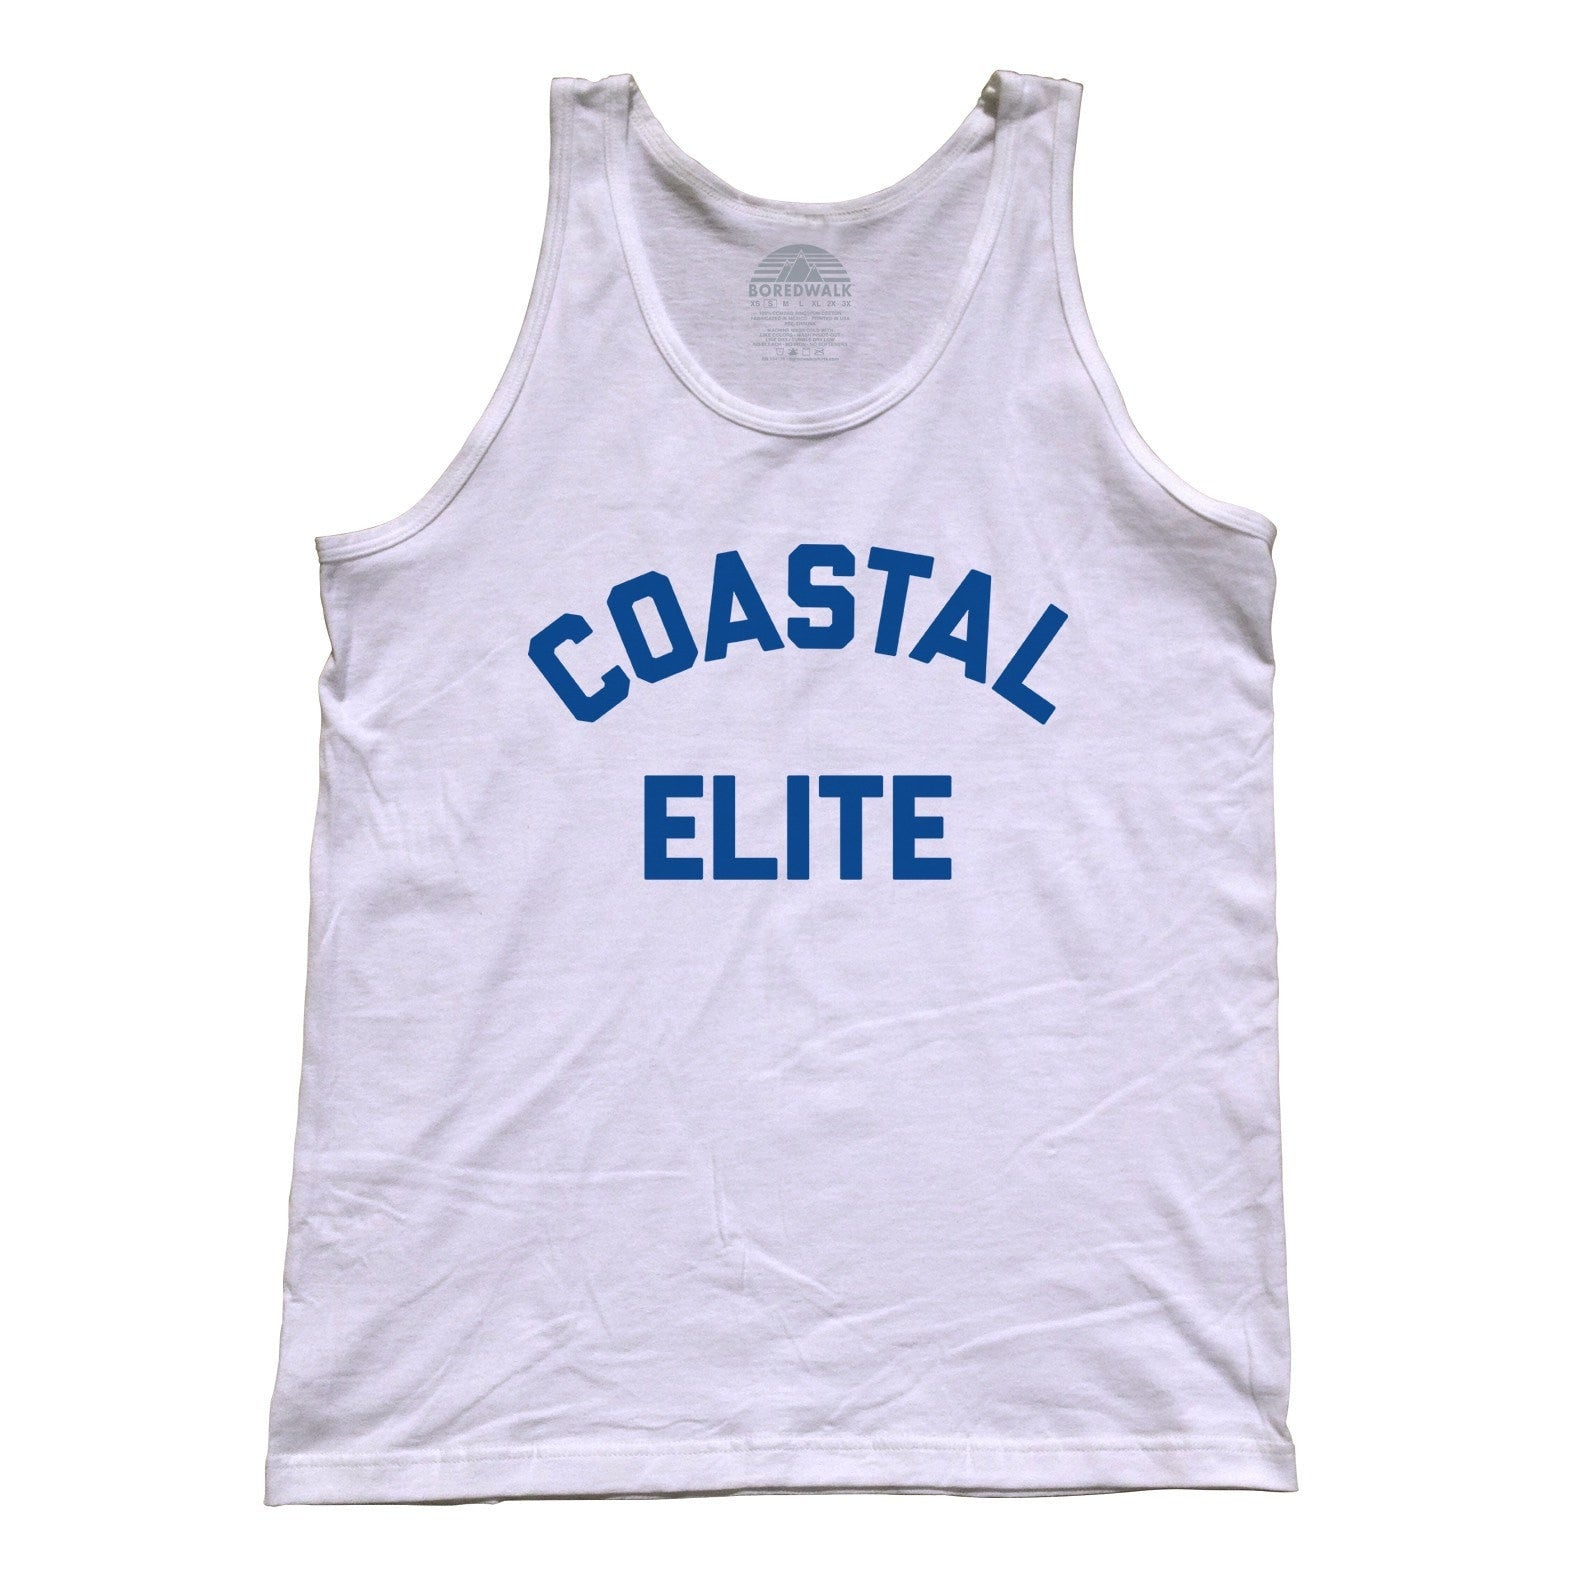 Unisex Coastal Elite Tank Top